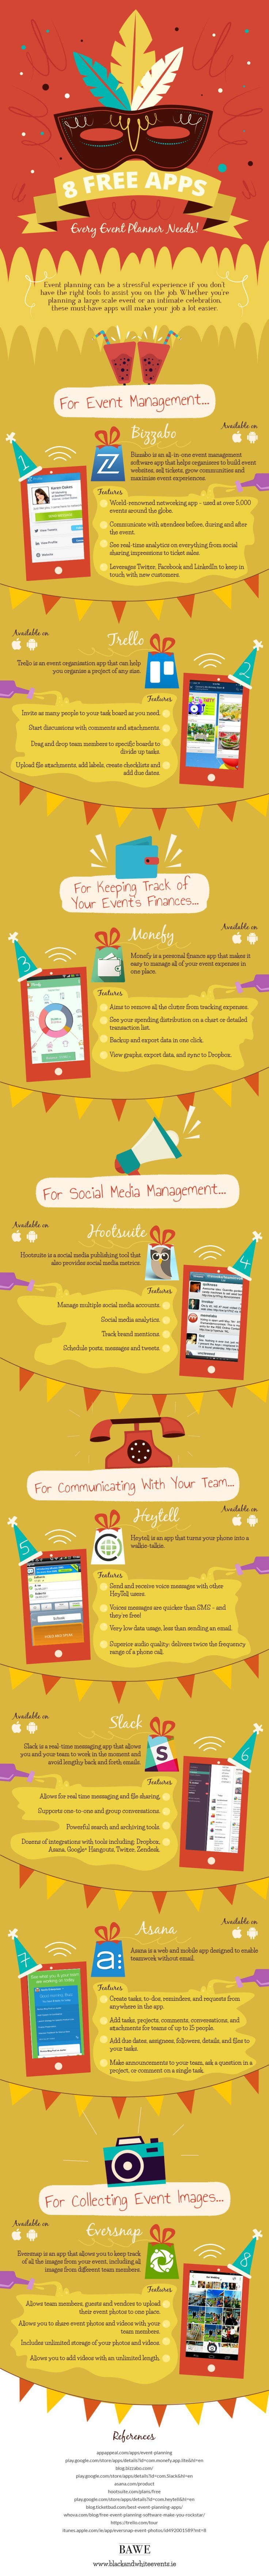 Free Apps Every Event Planner Needs Infographic  Free Apps